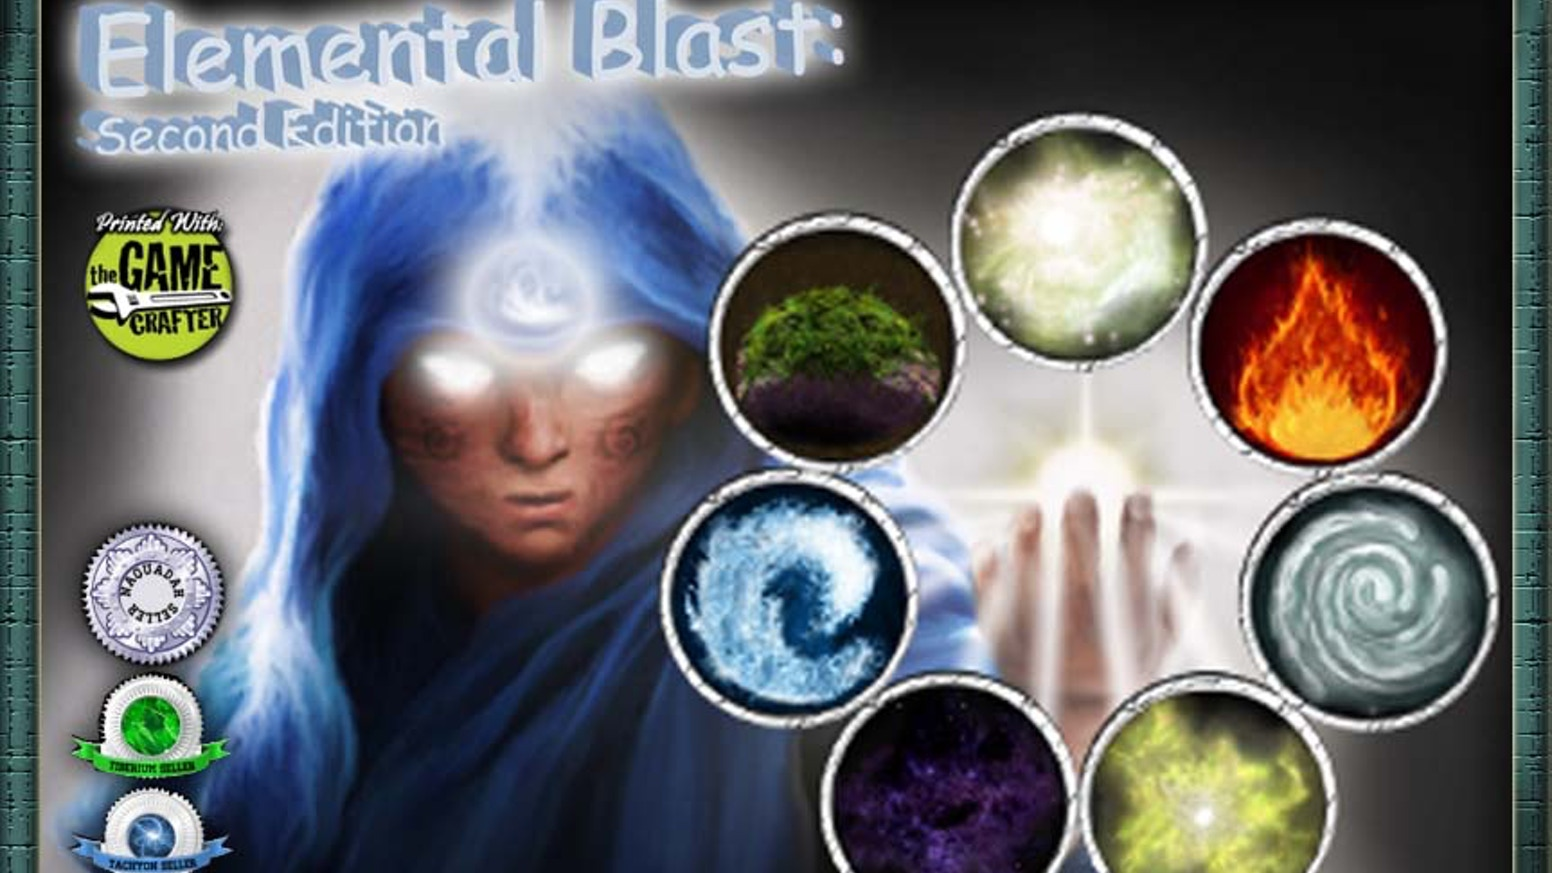 Can you master the elements and blast your way to victory? The award winning, strategic, party card game for 2-7 players.